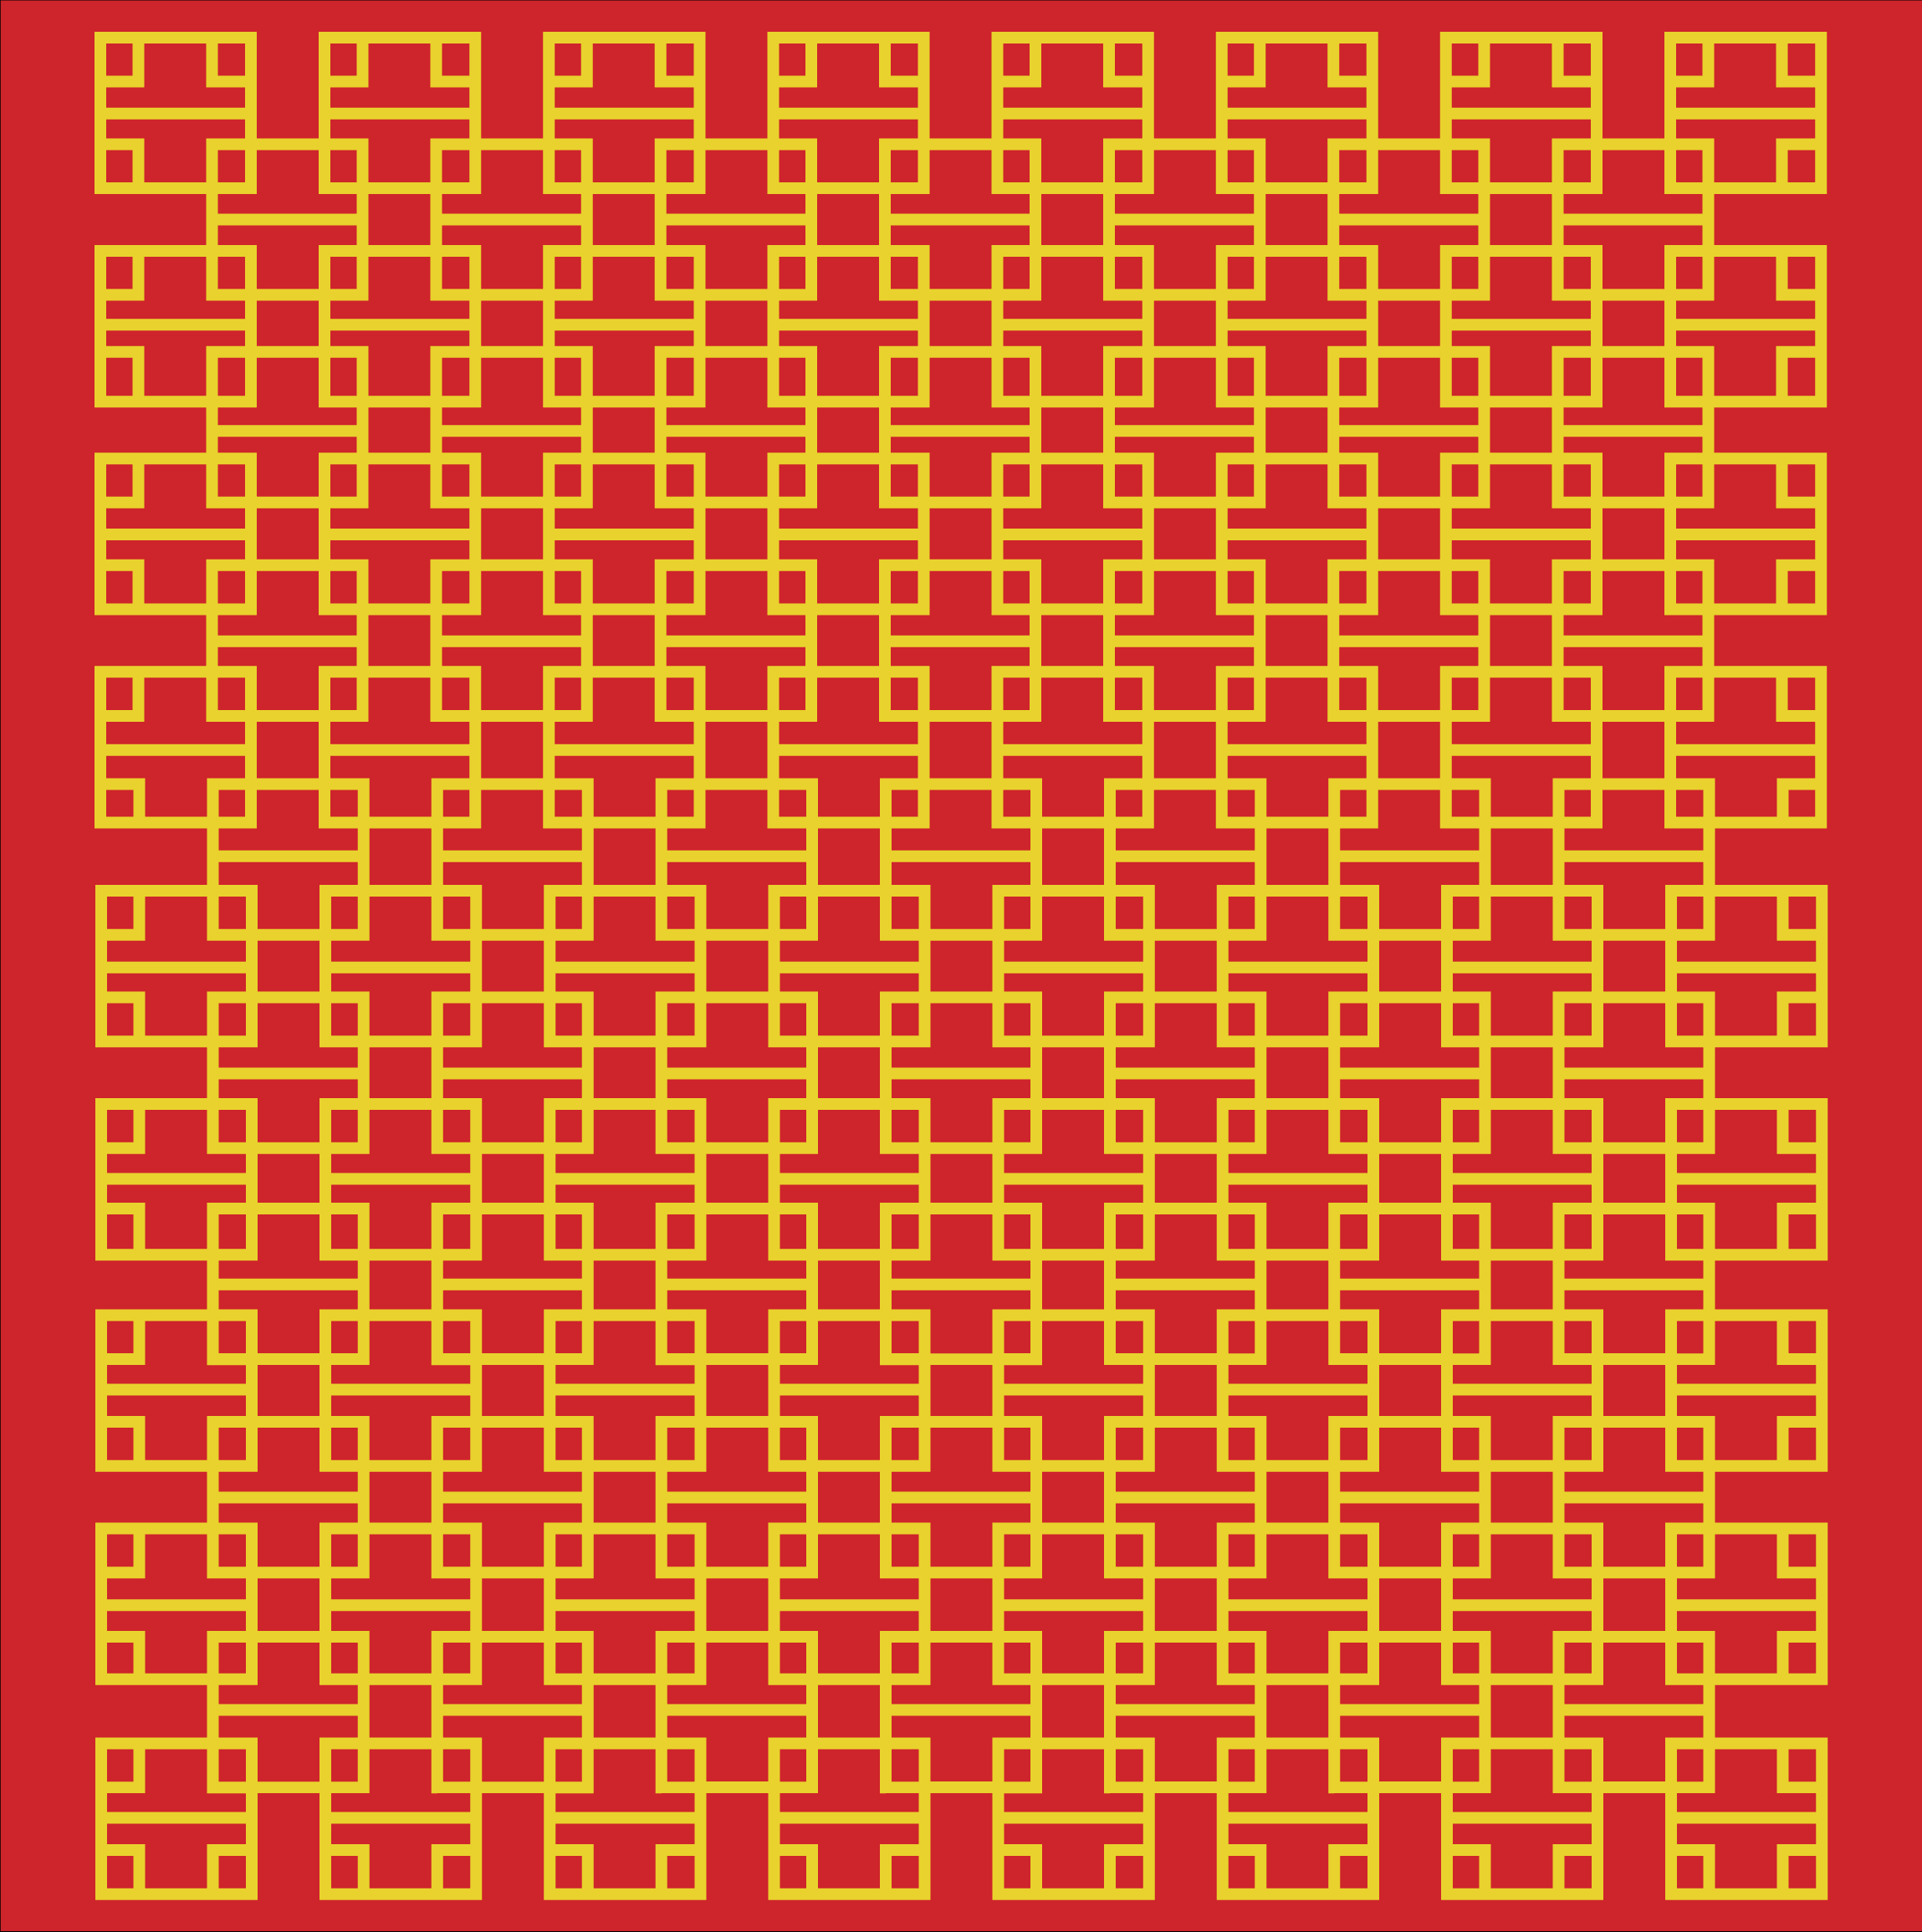 Chinese pattern style by marco novara red symbolizes good fortune chinese pattern style by marco novara red symbolizes good fortune and joy in chinese culture biocorpaavc Images